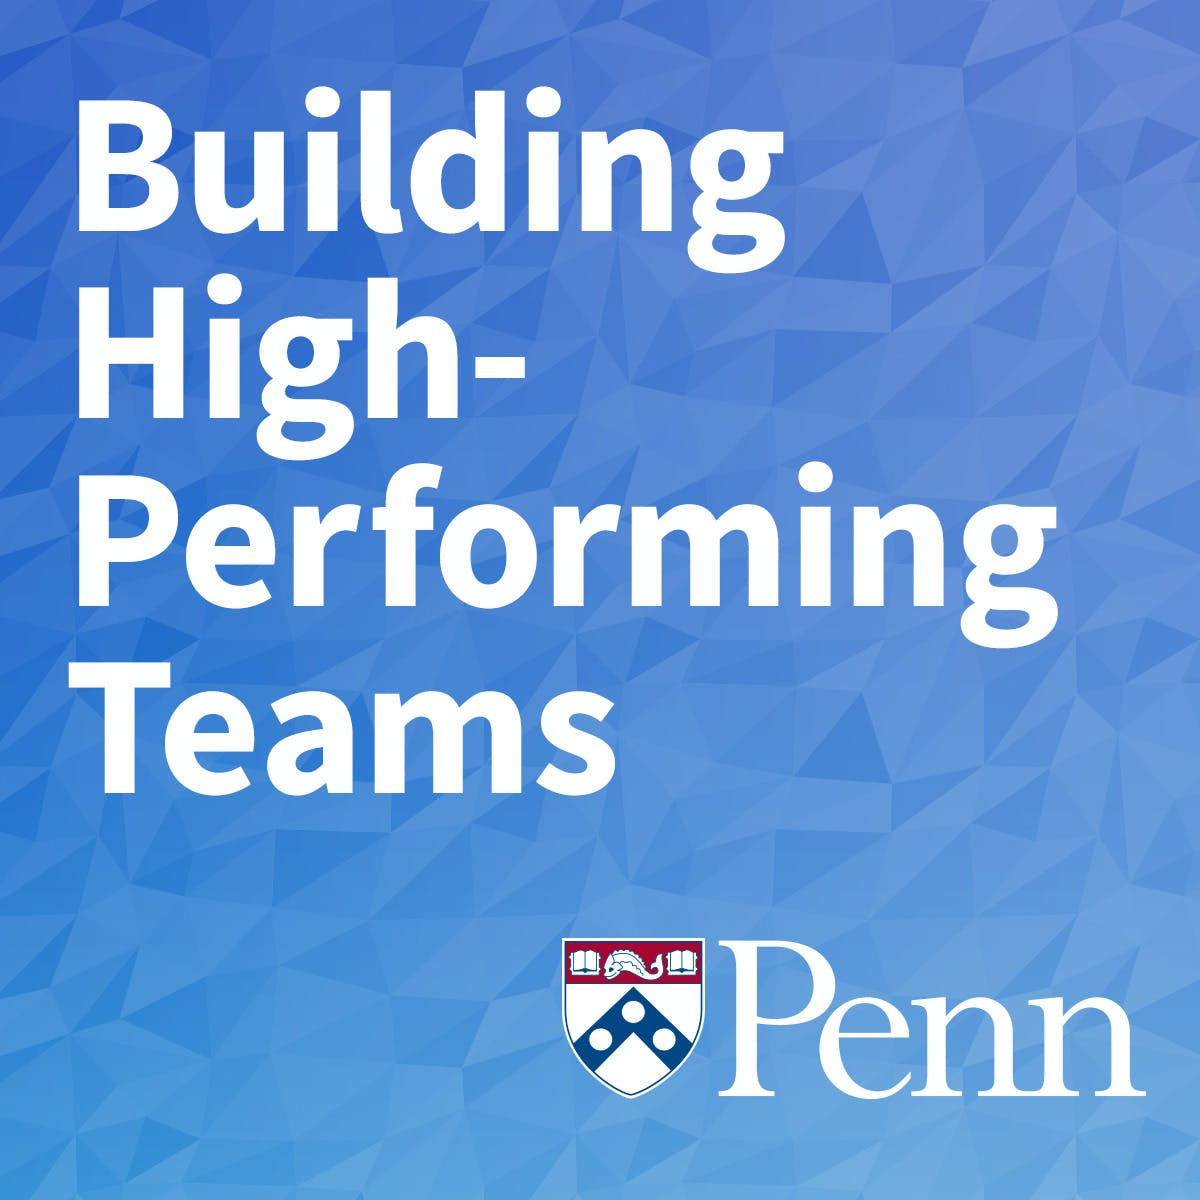 Building High-Performing Teams